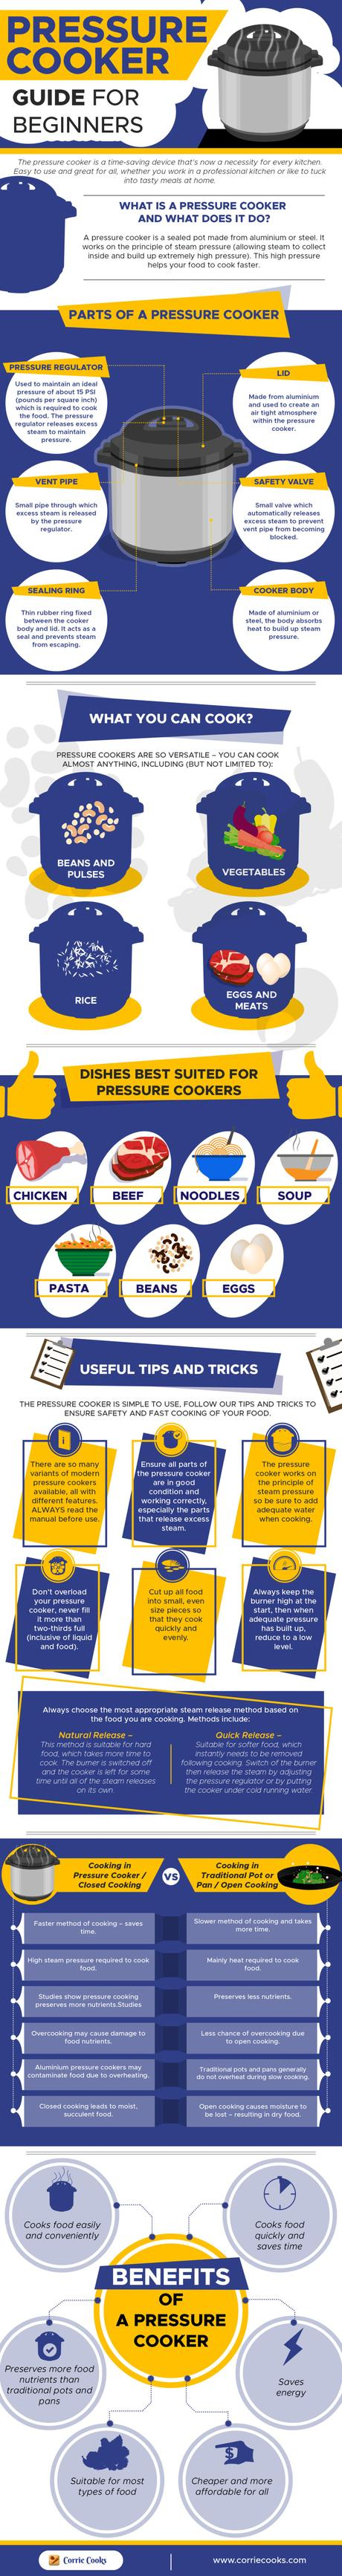 Pressure Cooker Guide for Beginners